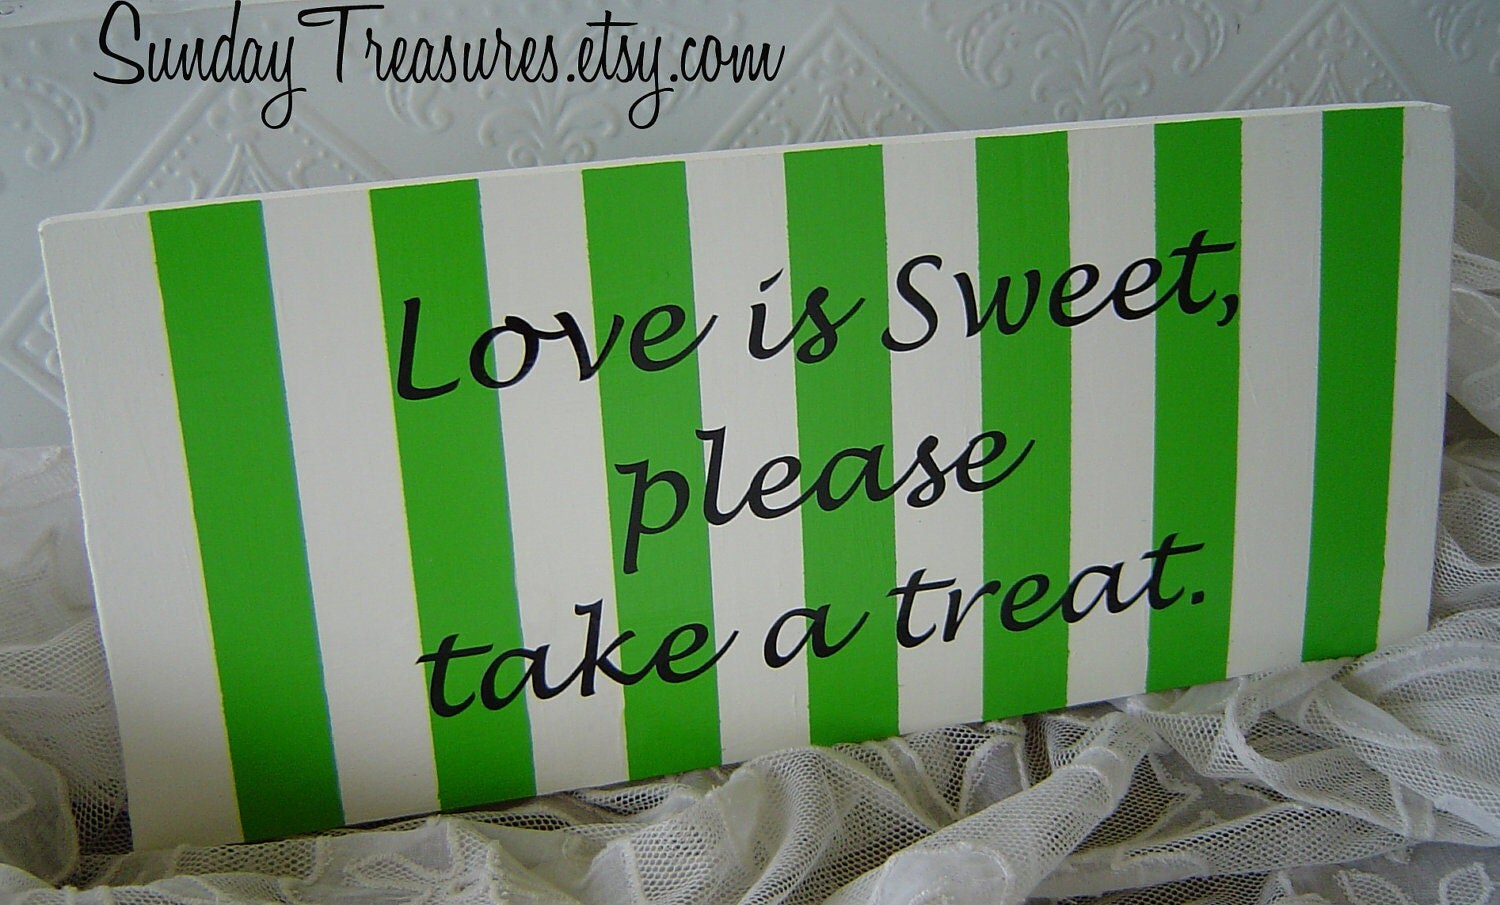 Lime Green Love is Sweet please take a treat Sign Wedding Candy Dessert Table.  Valentines  3 day Ship Pick Colors 700 Items in My Shop